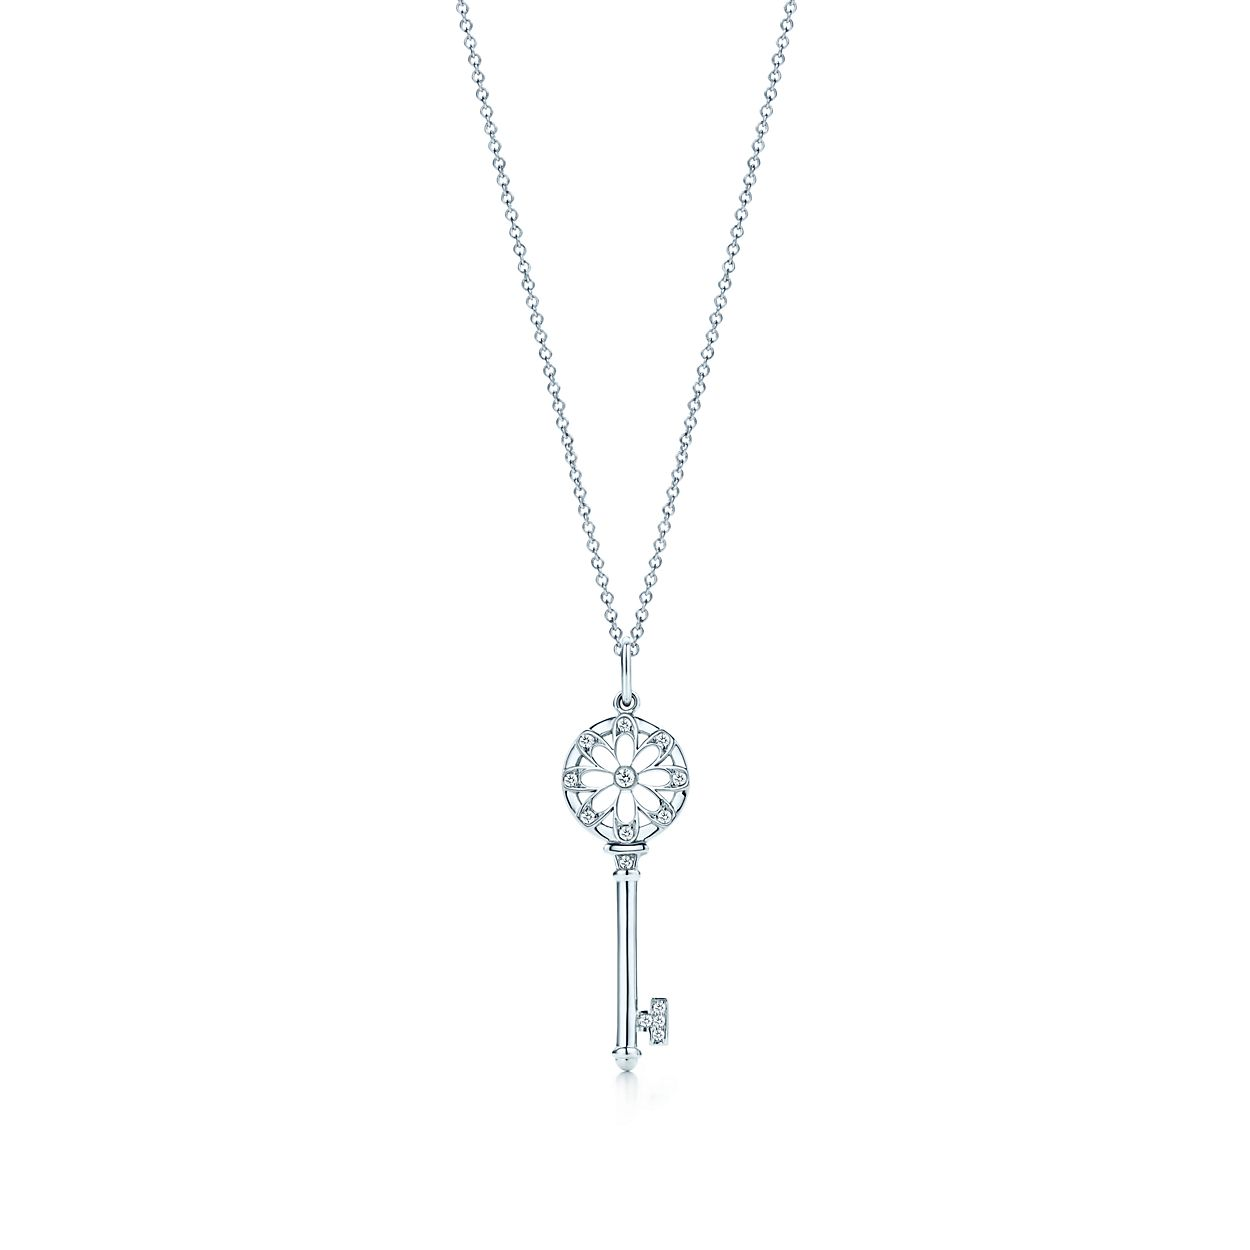 Tiffany keys floral key pendant in 18k white gold with diamonds tiffany keysfloral key pendant tiffany keysfloral key pendant aloadofball Gallery